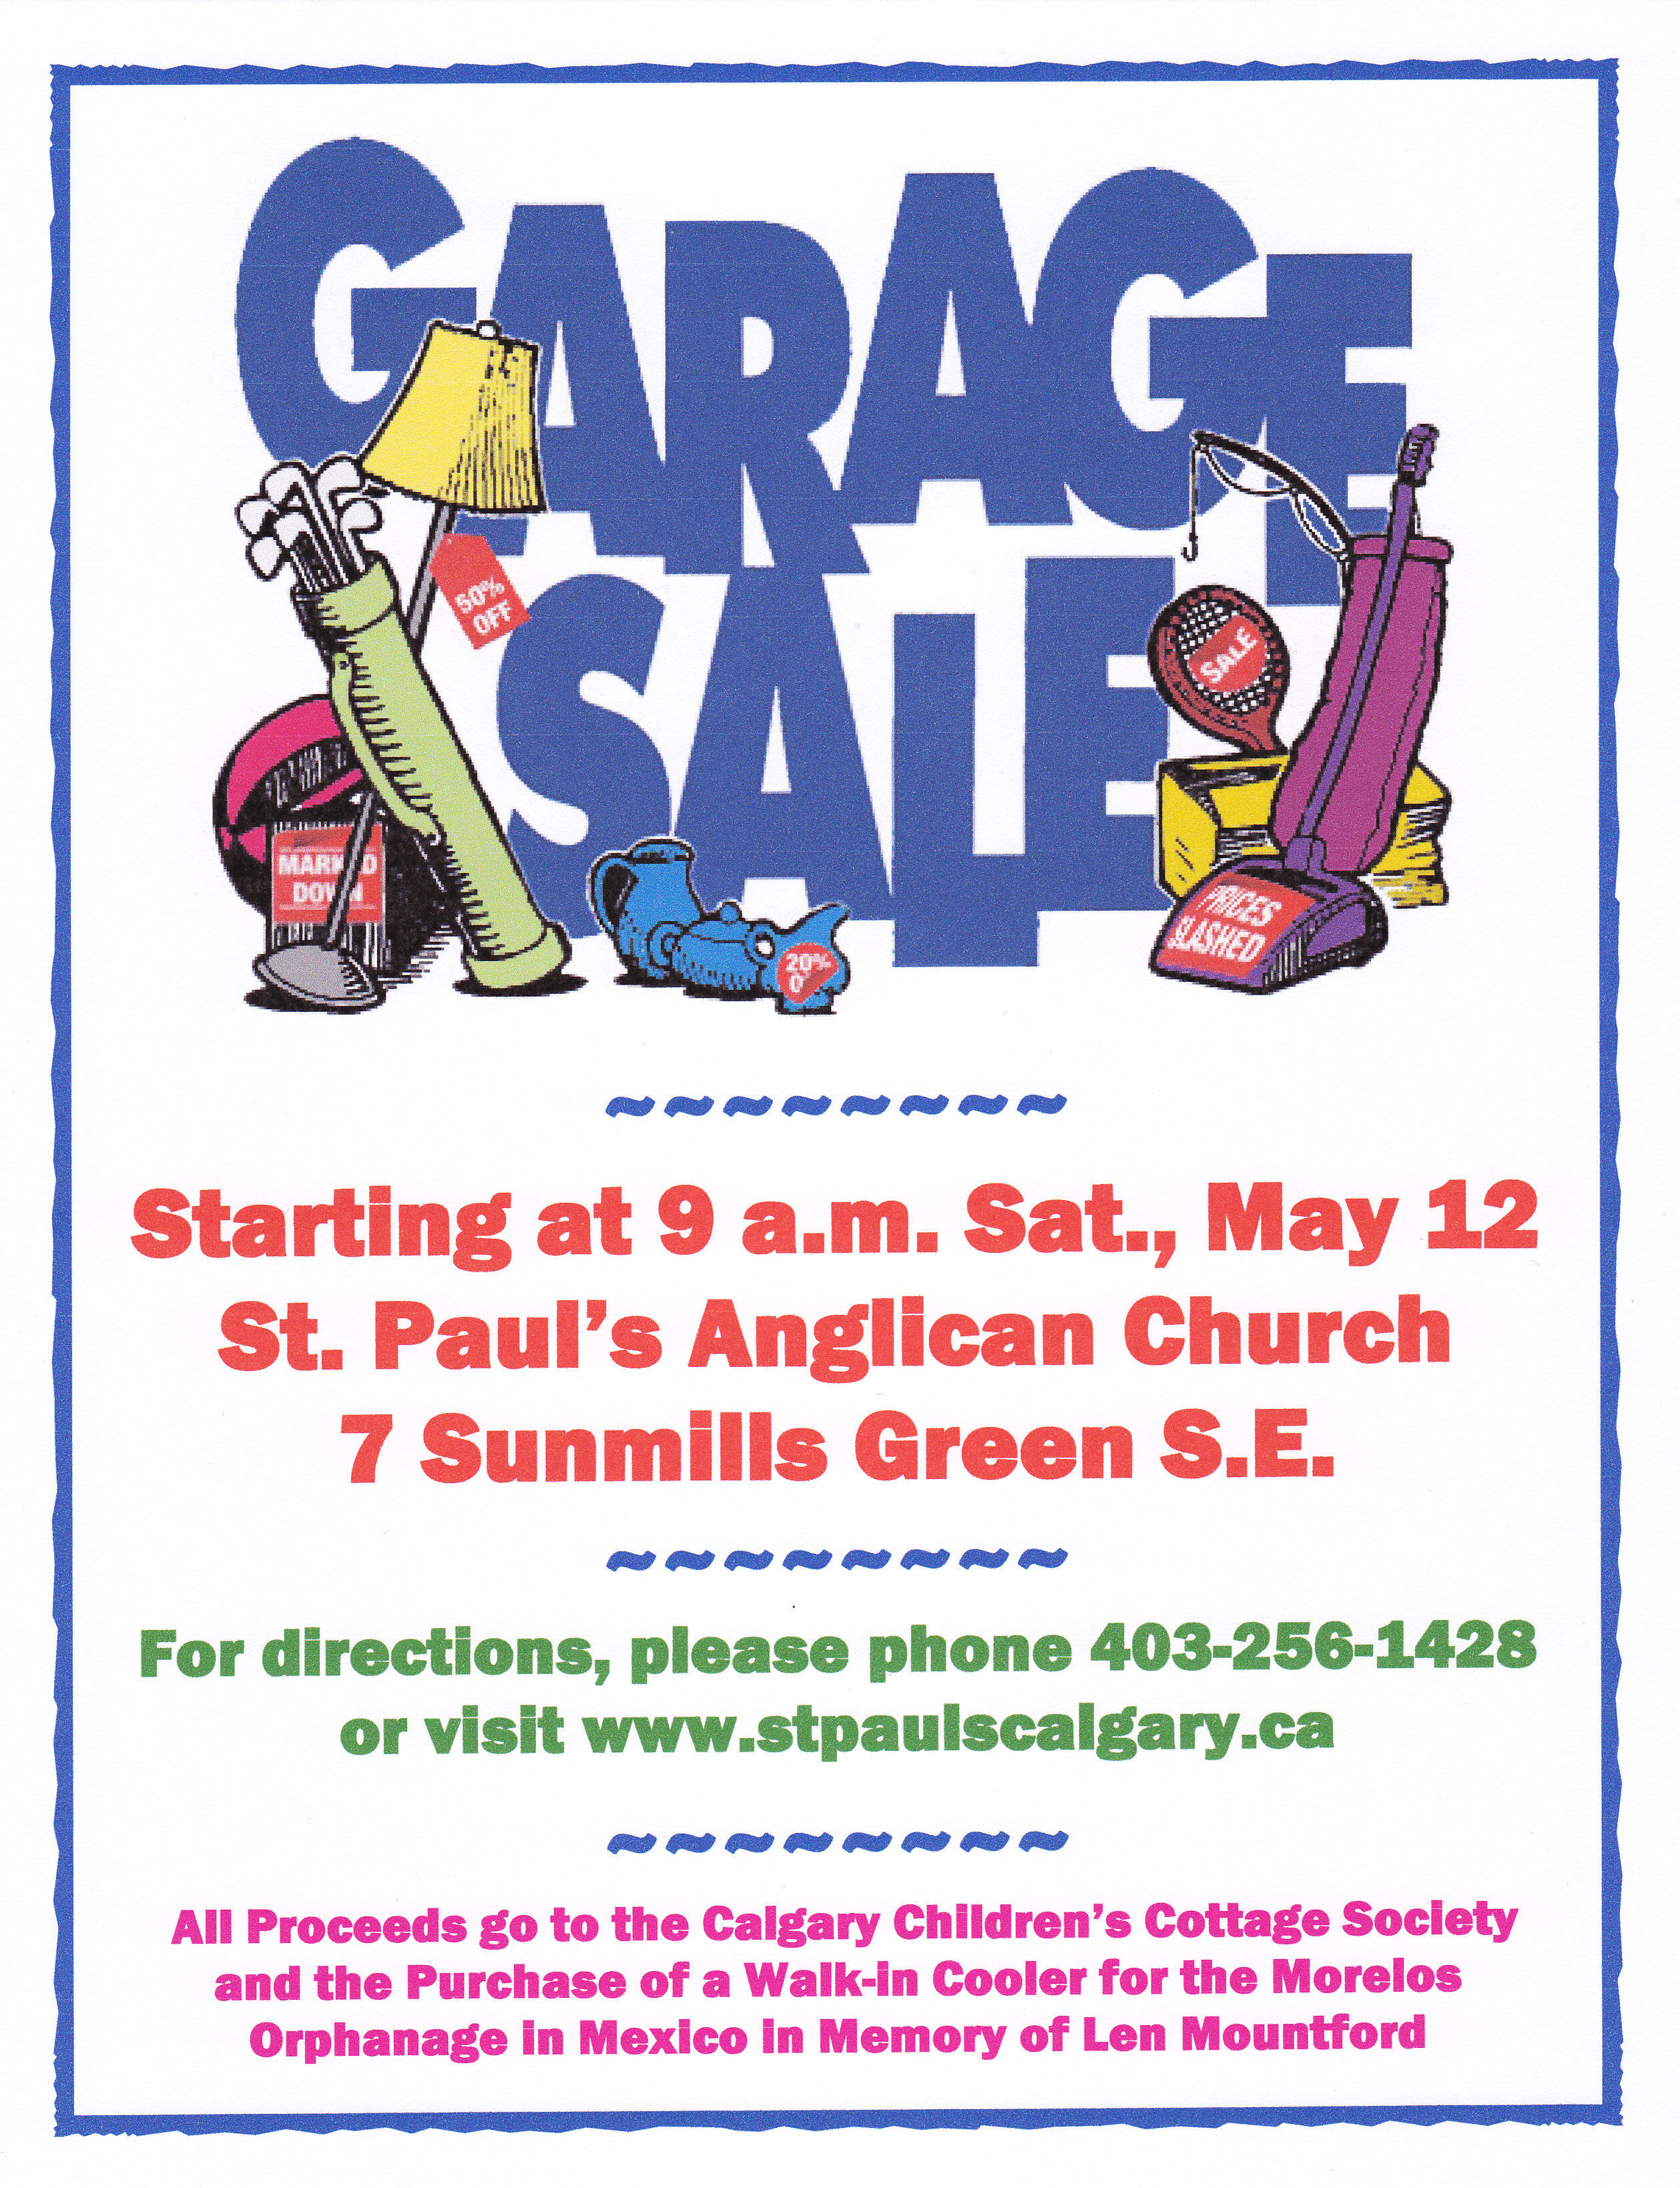 Our Garage Sale on May 12 Will Support Local Outreach and the ...